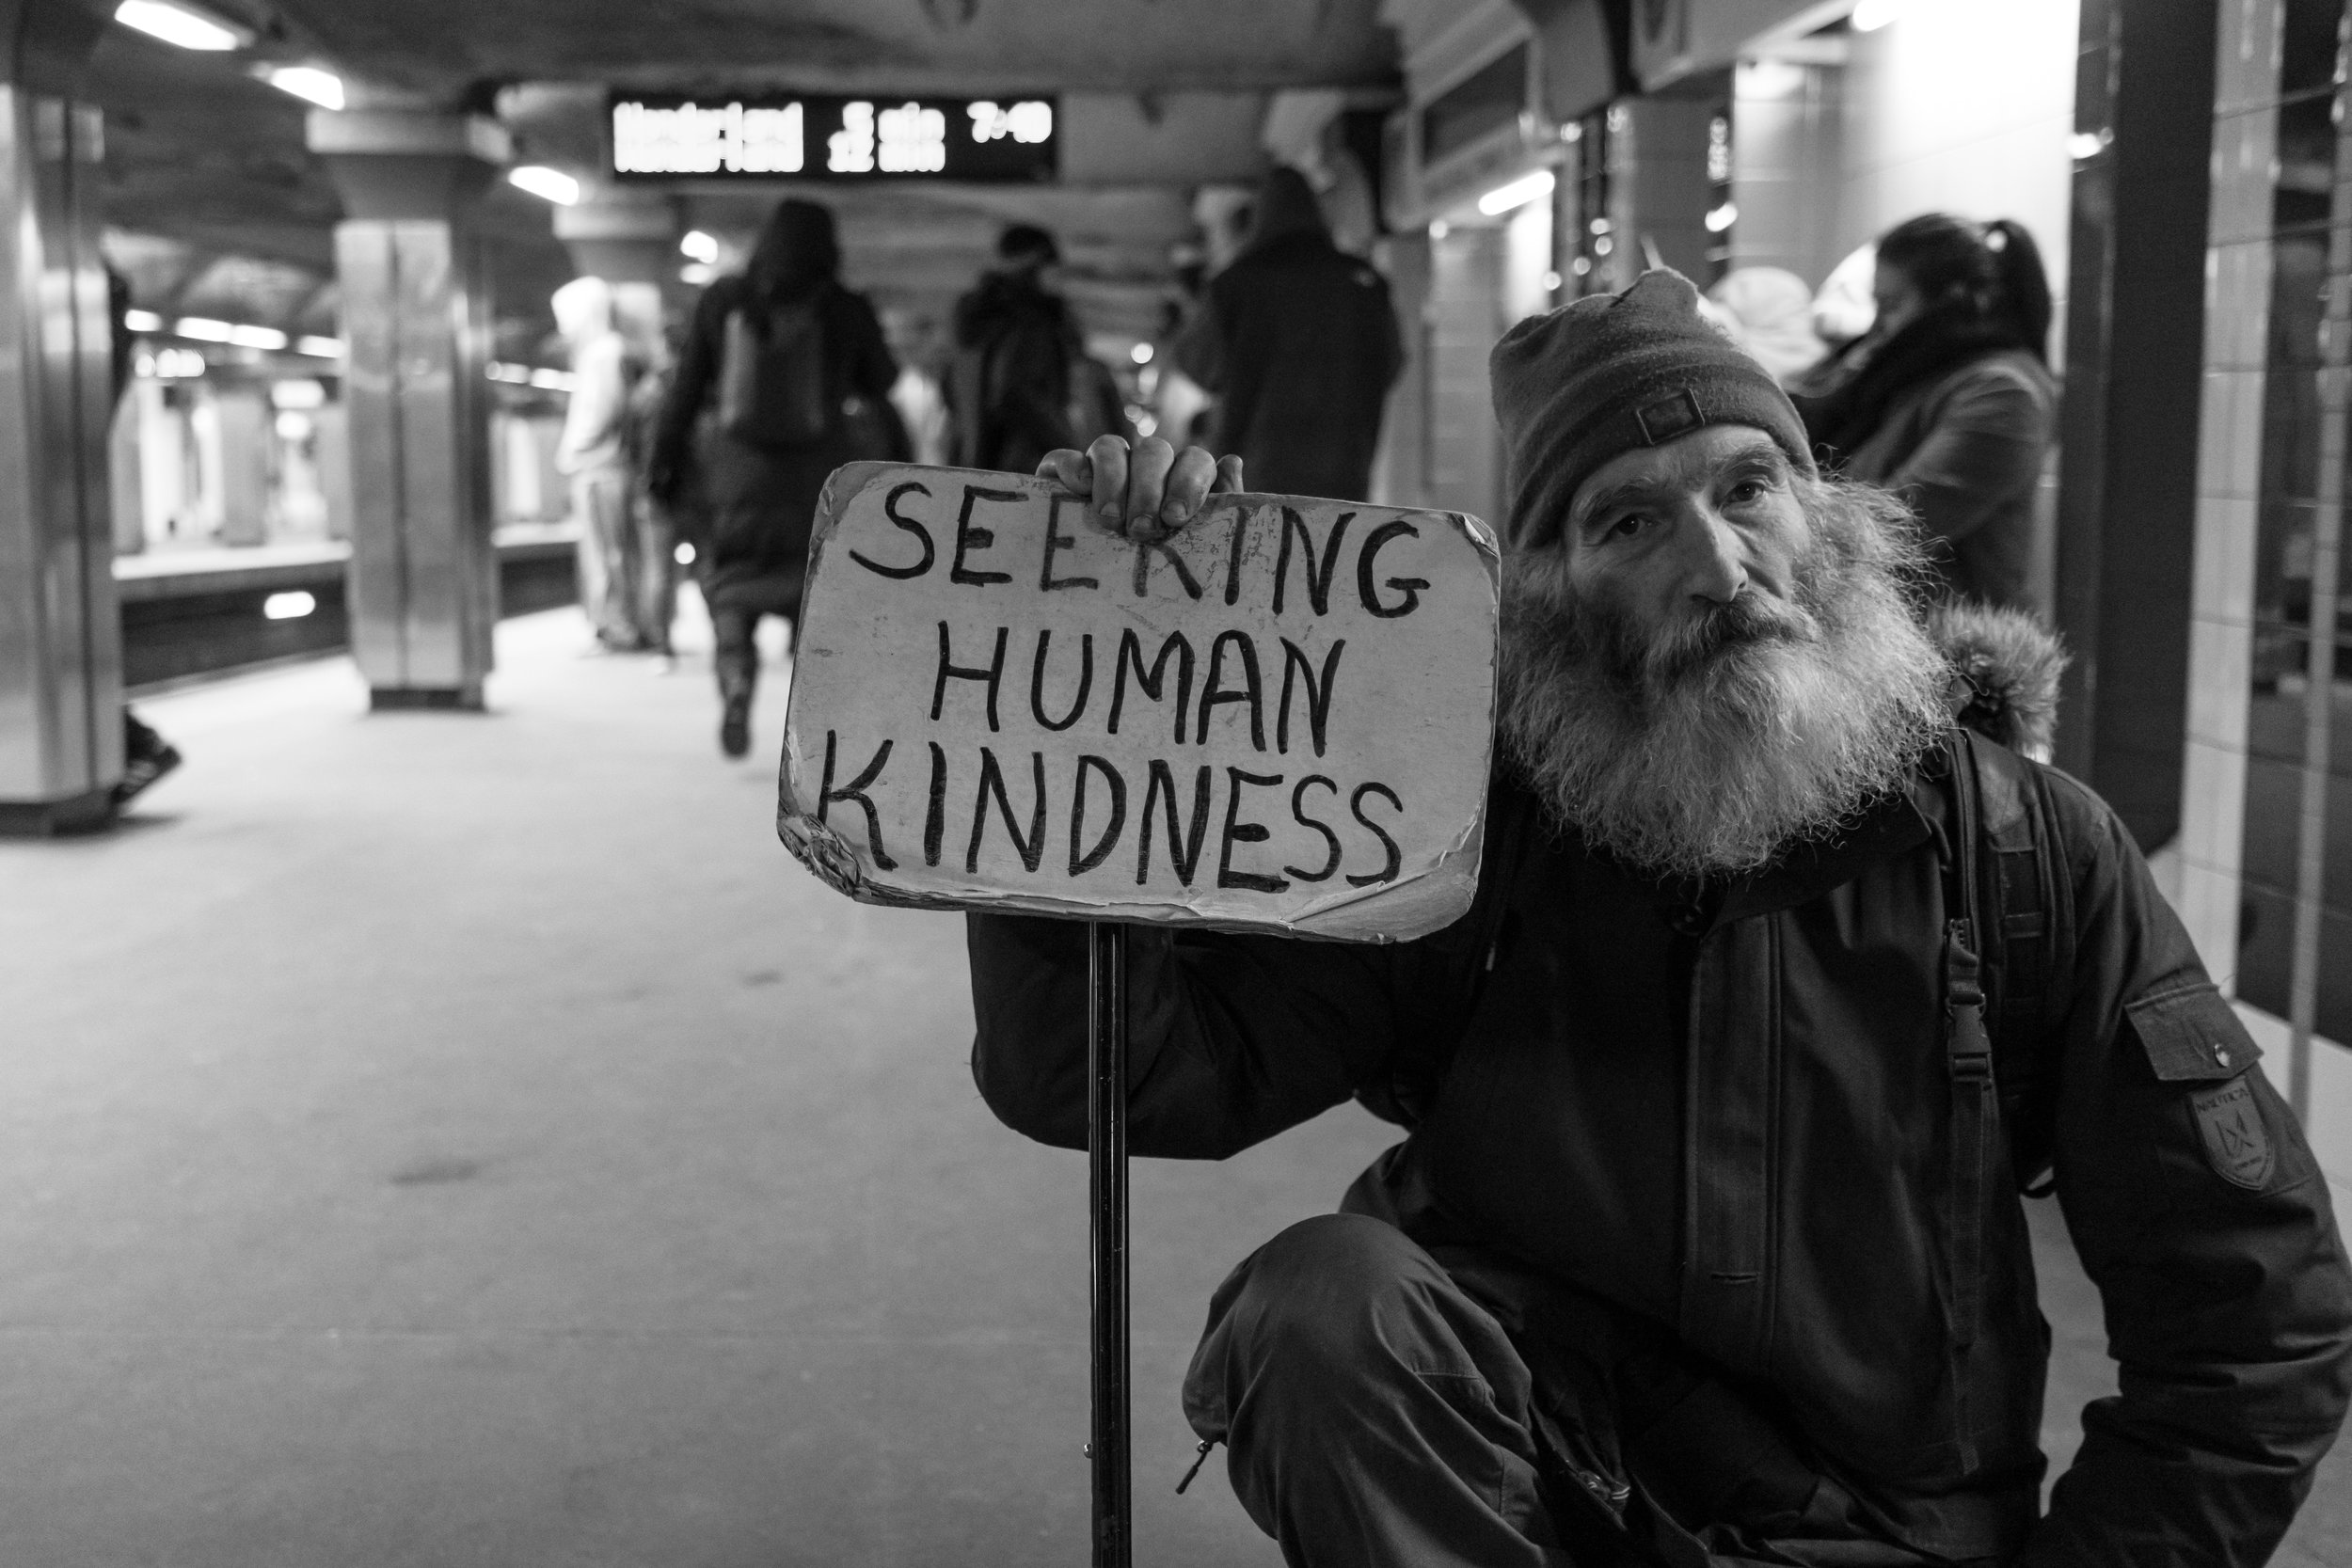 Kindness goes a lot further than cruelty, even the inadvertent sort.